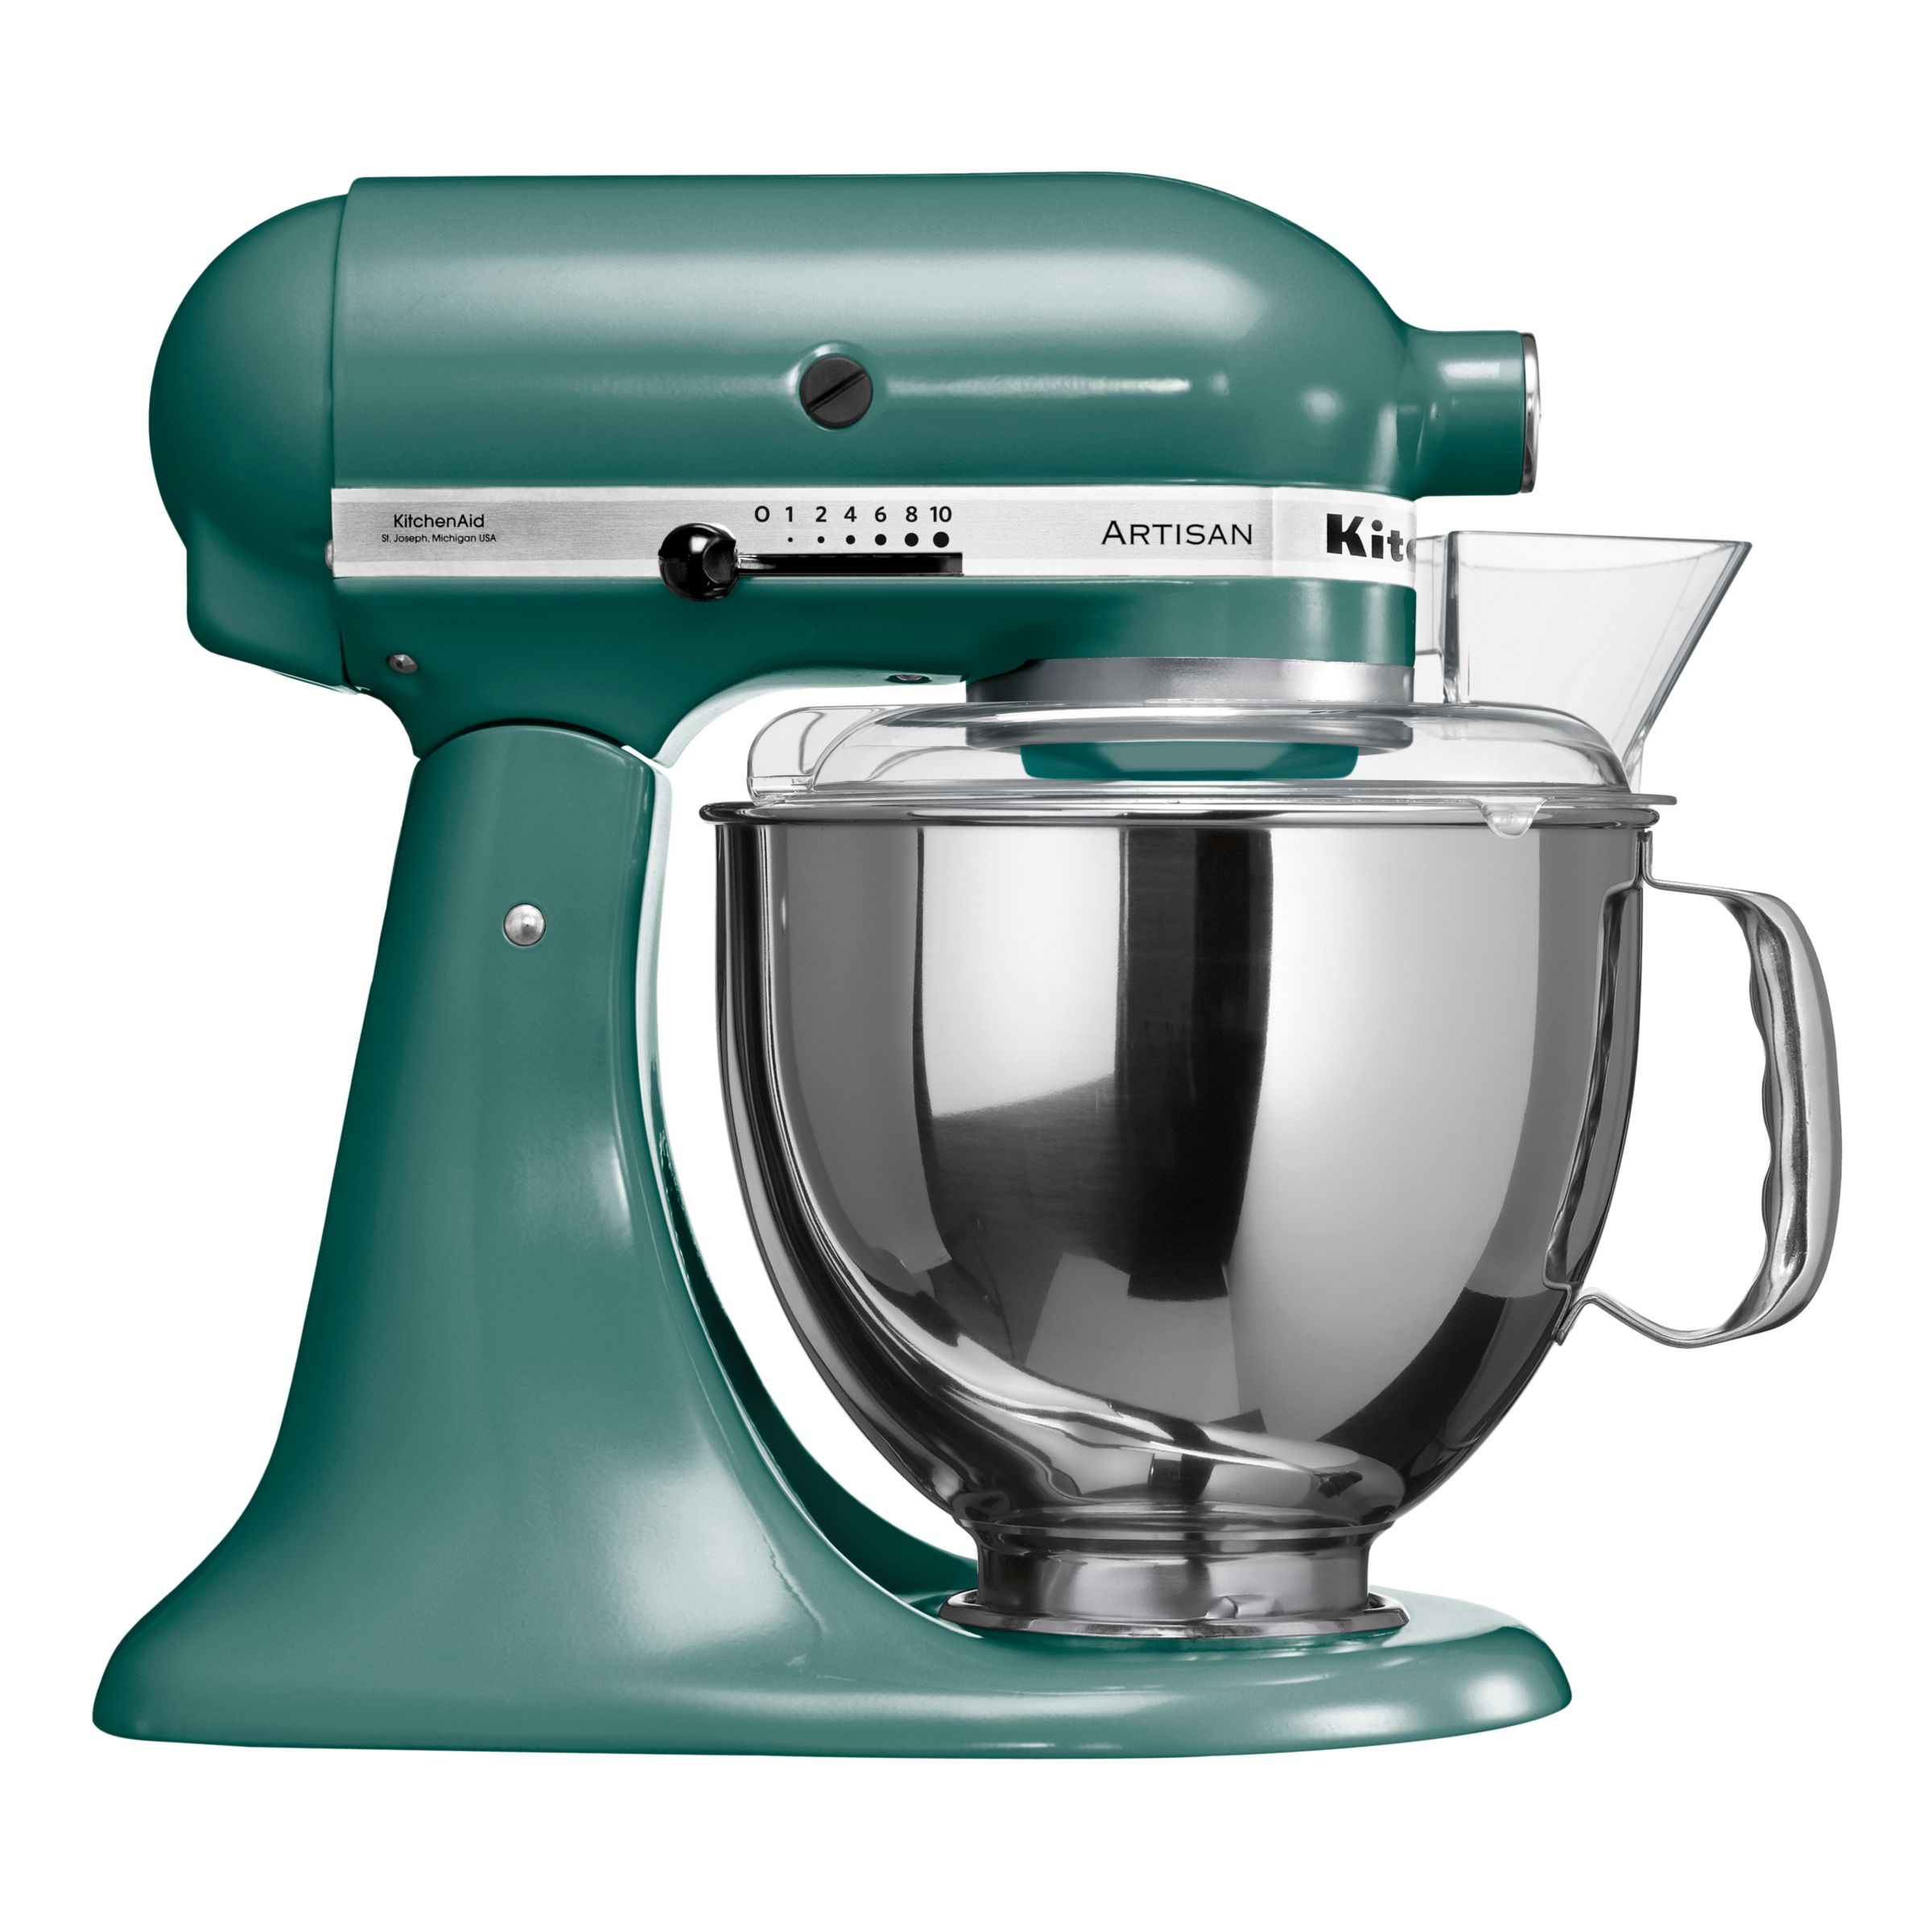 Kitchenaid artisan food mixer shop for cheap other appliances and save online - Kitchenaid mixer bayleaf ...